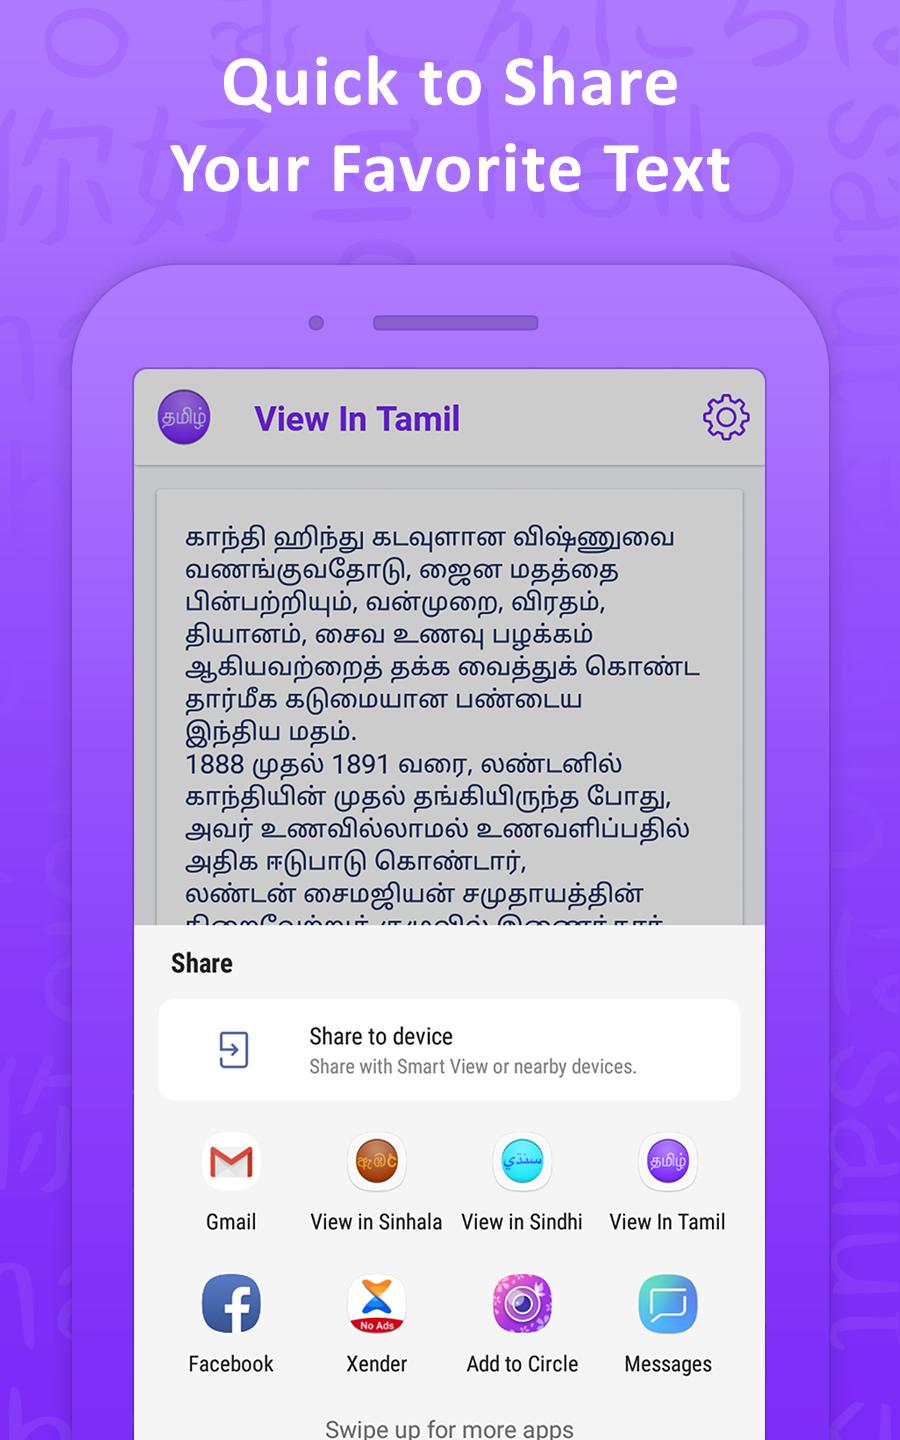 View In Tamil for Android - APK Download